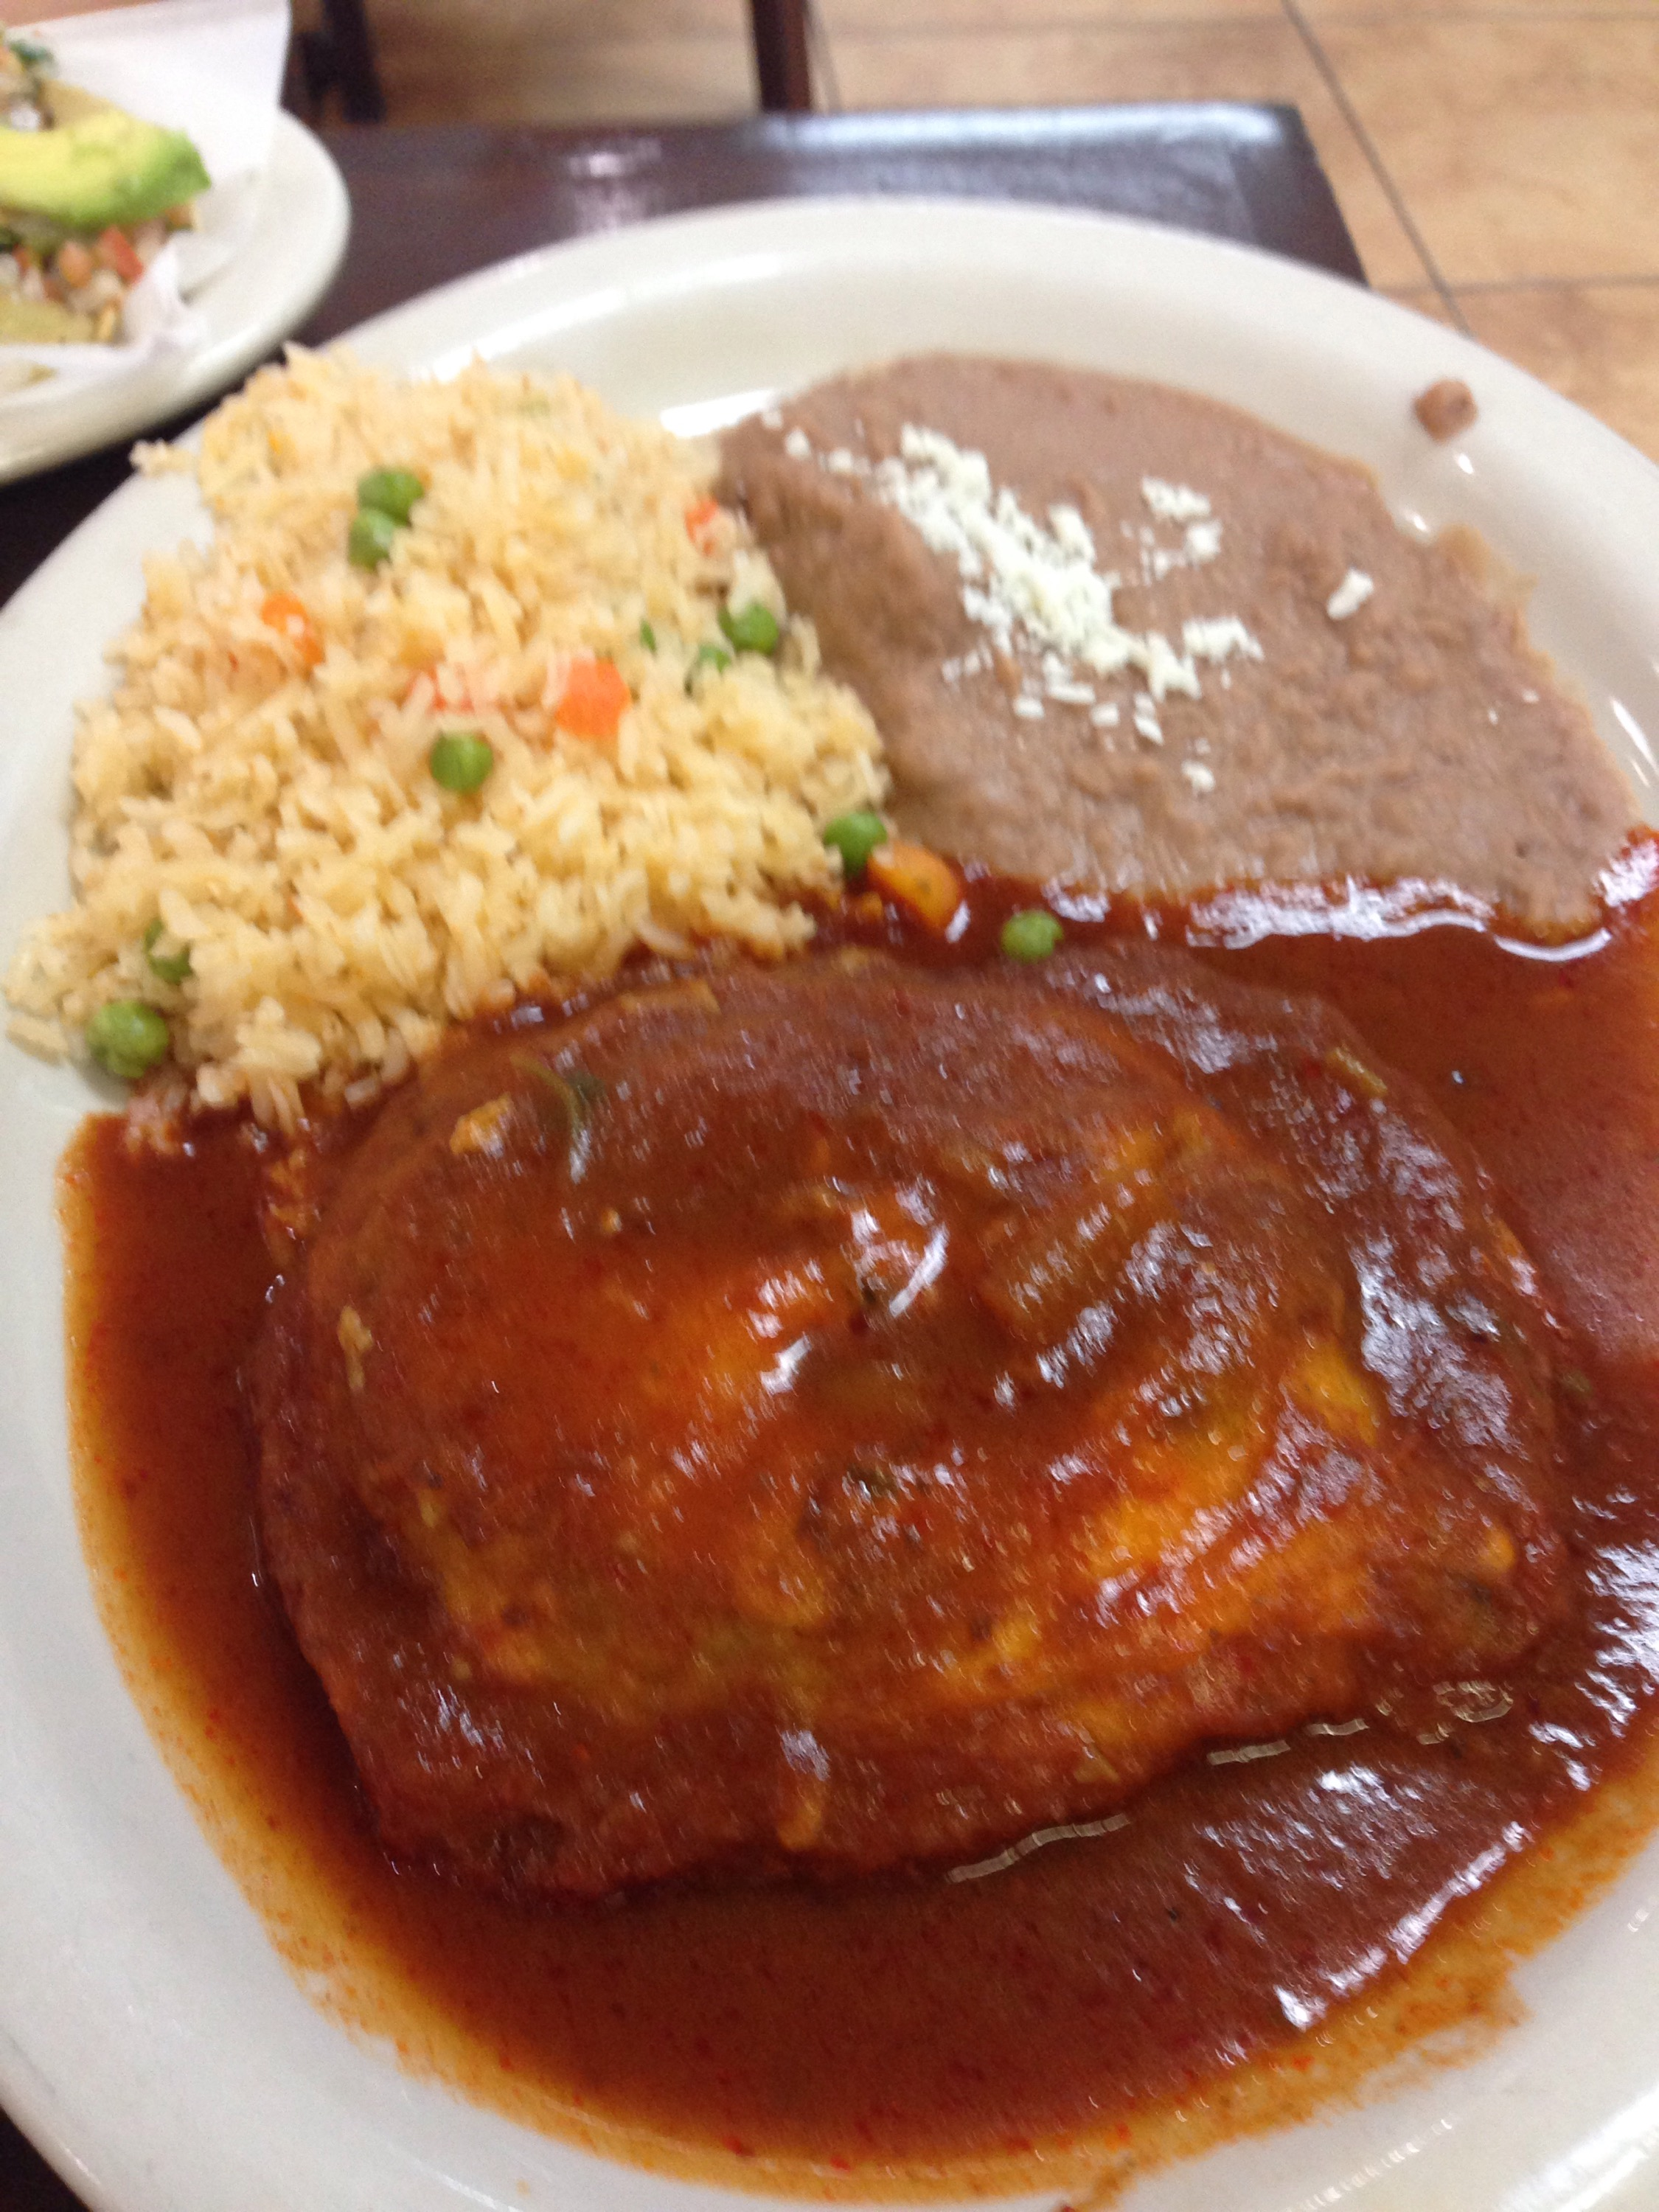 The chile relleno